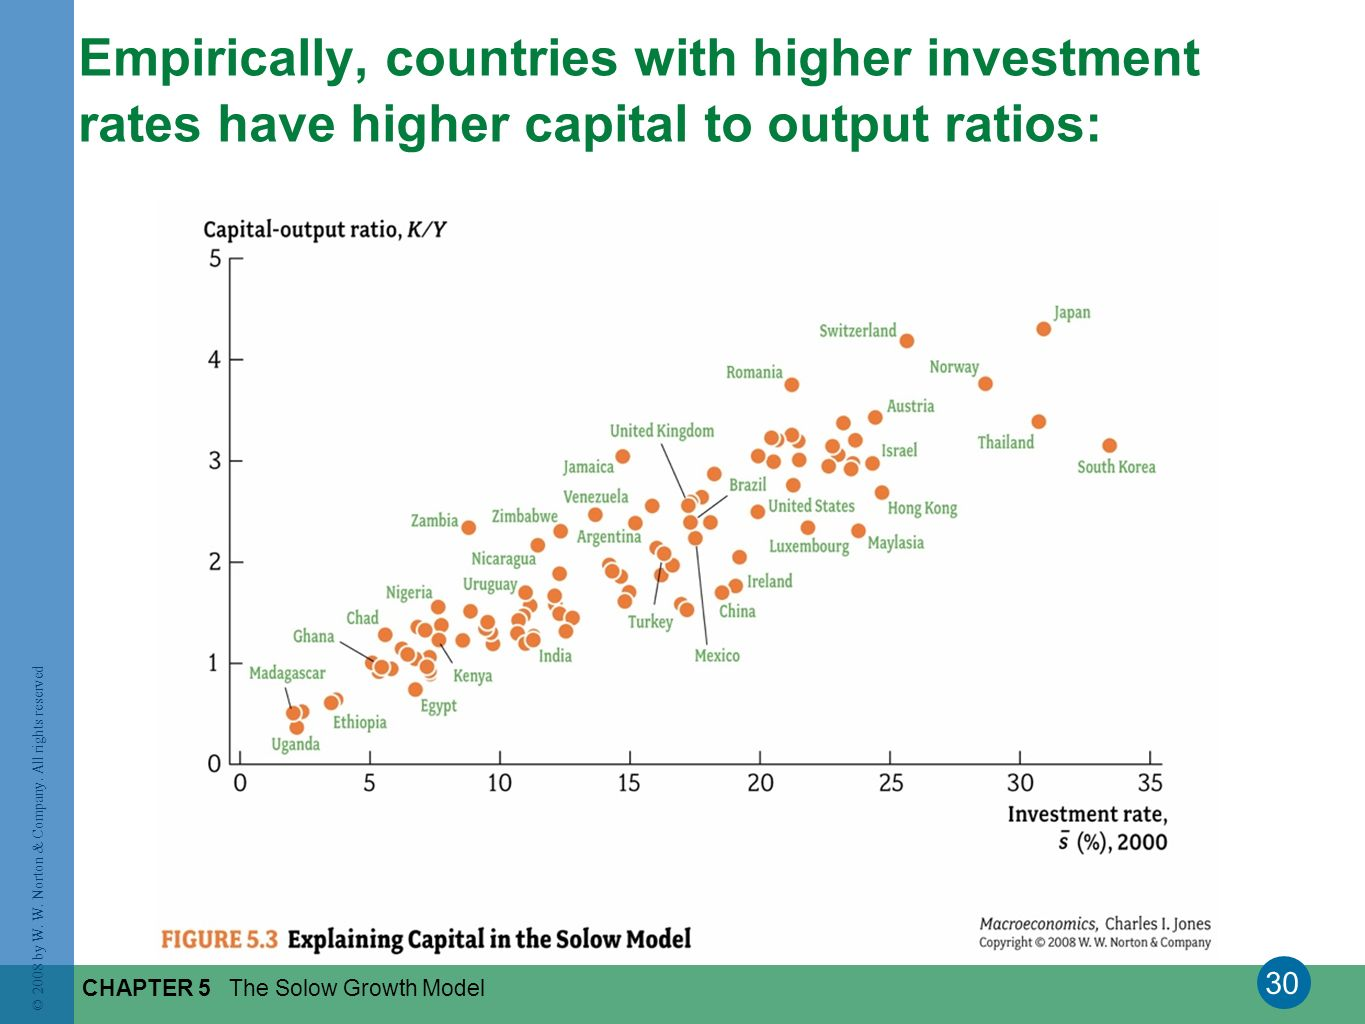 Empirically, countries with higher investment rates have higher capital to output ratios: